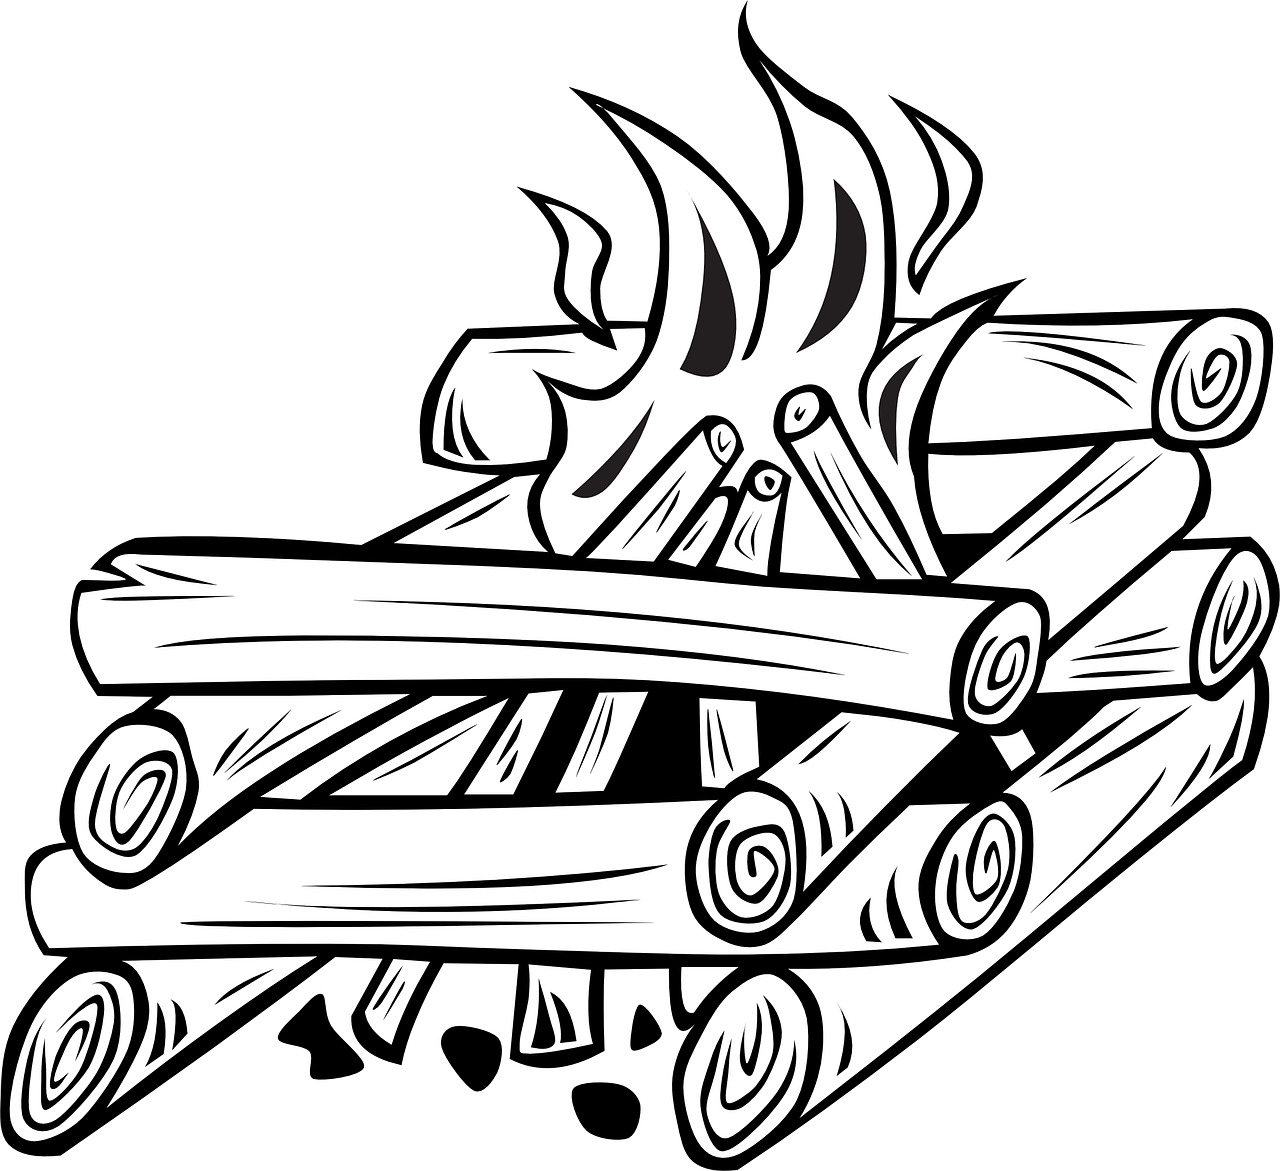 Campfire wood log free. Firewood clipart cooking